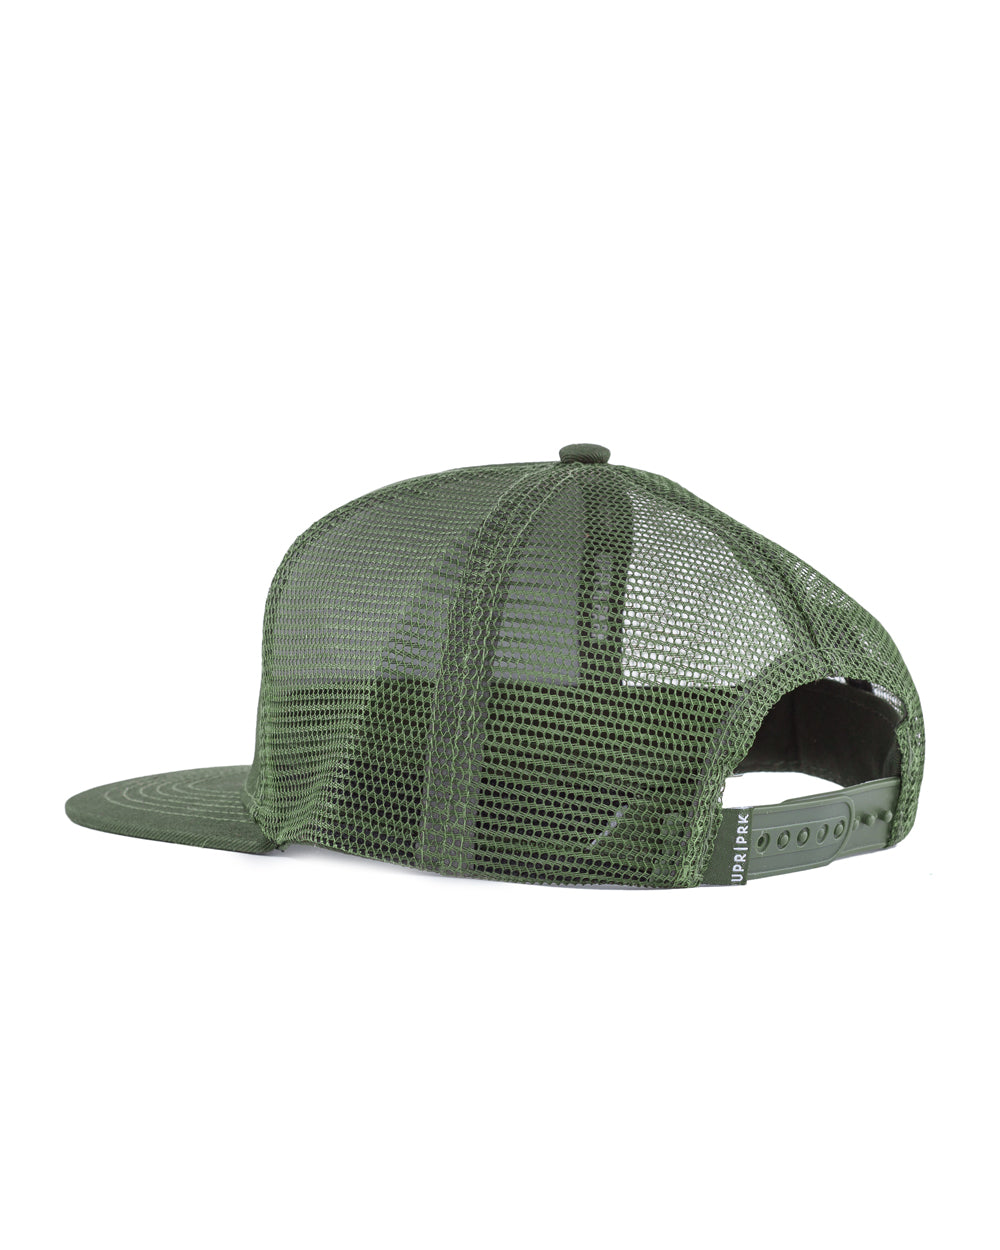 Olive UPR PRK Trucker Hat. Product image 1 ... 7290c66cd9a